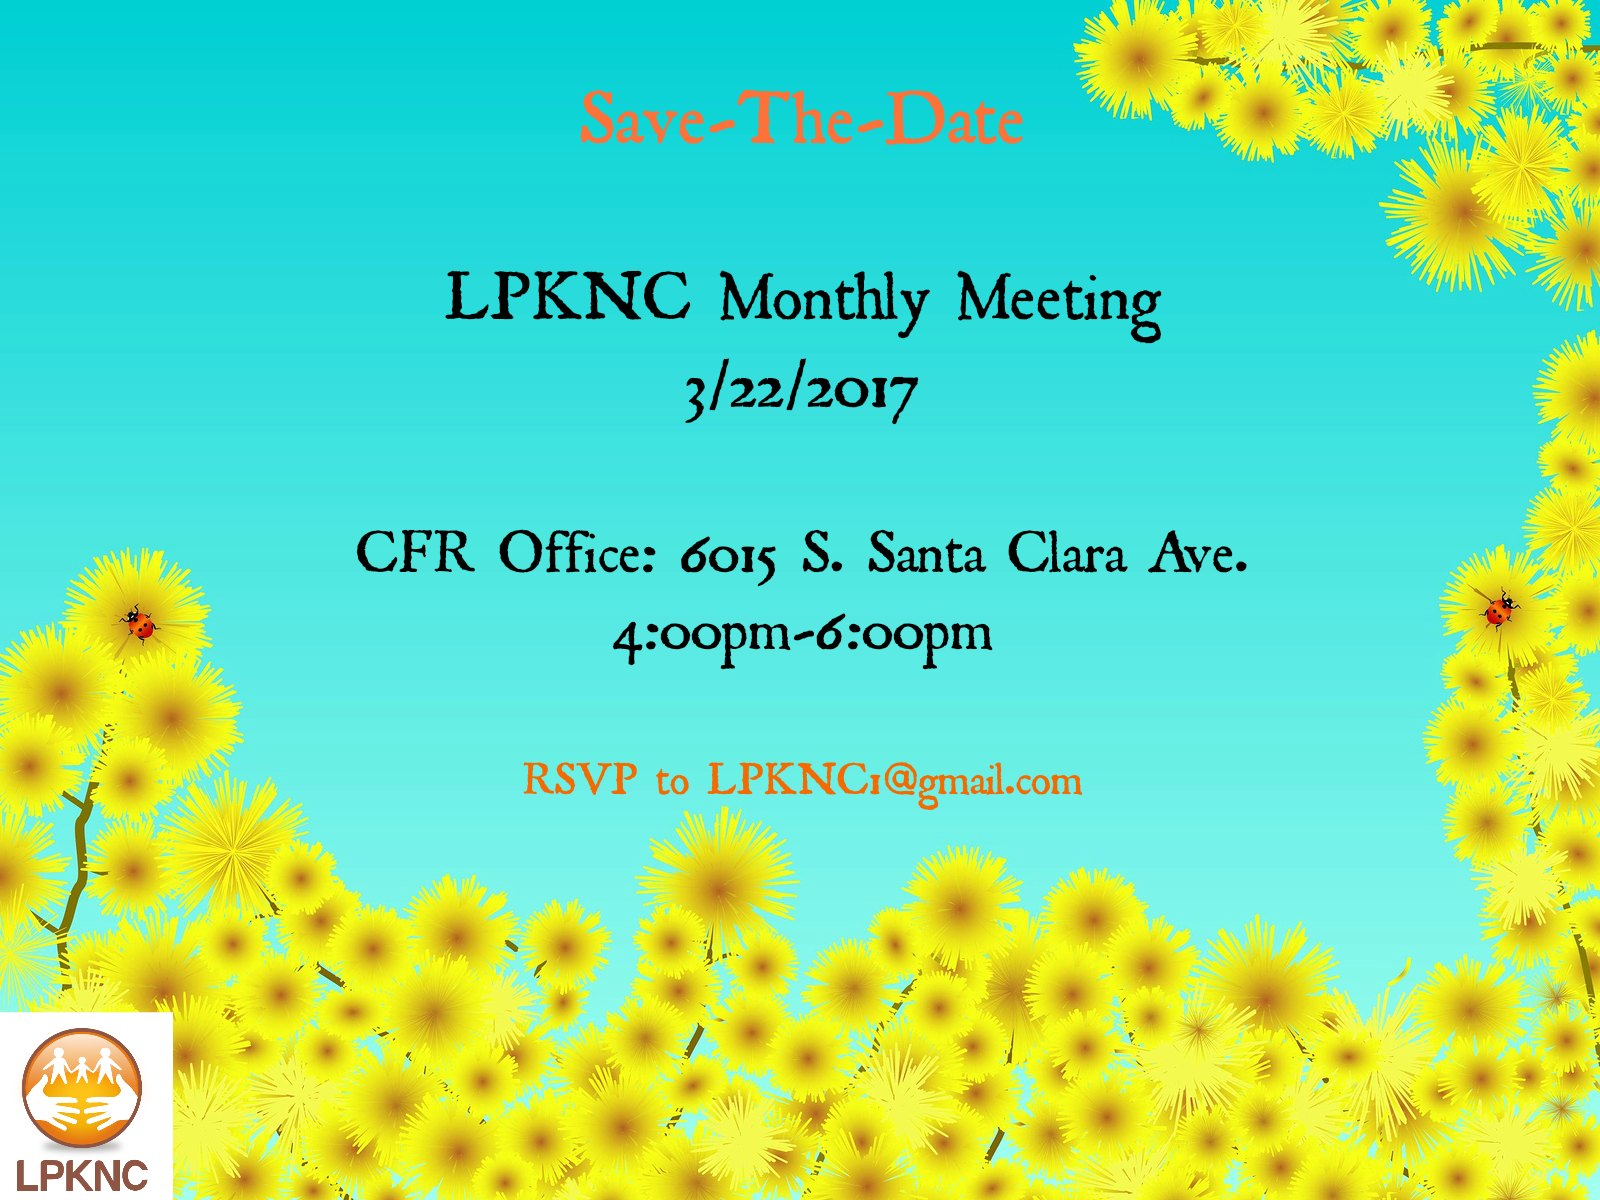 LPKNC Monthly Meeting